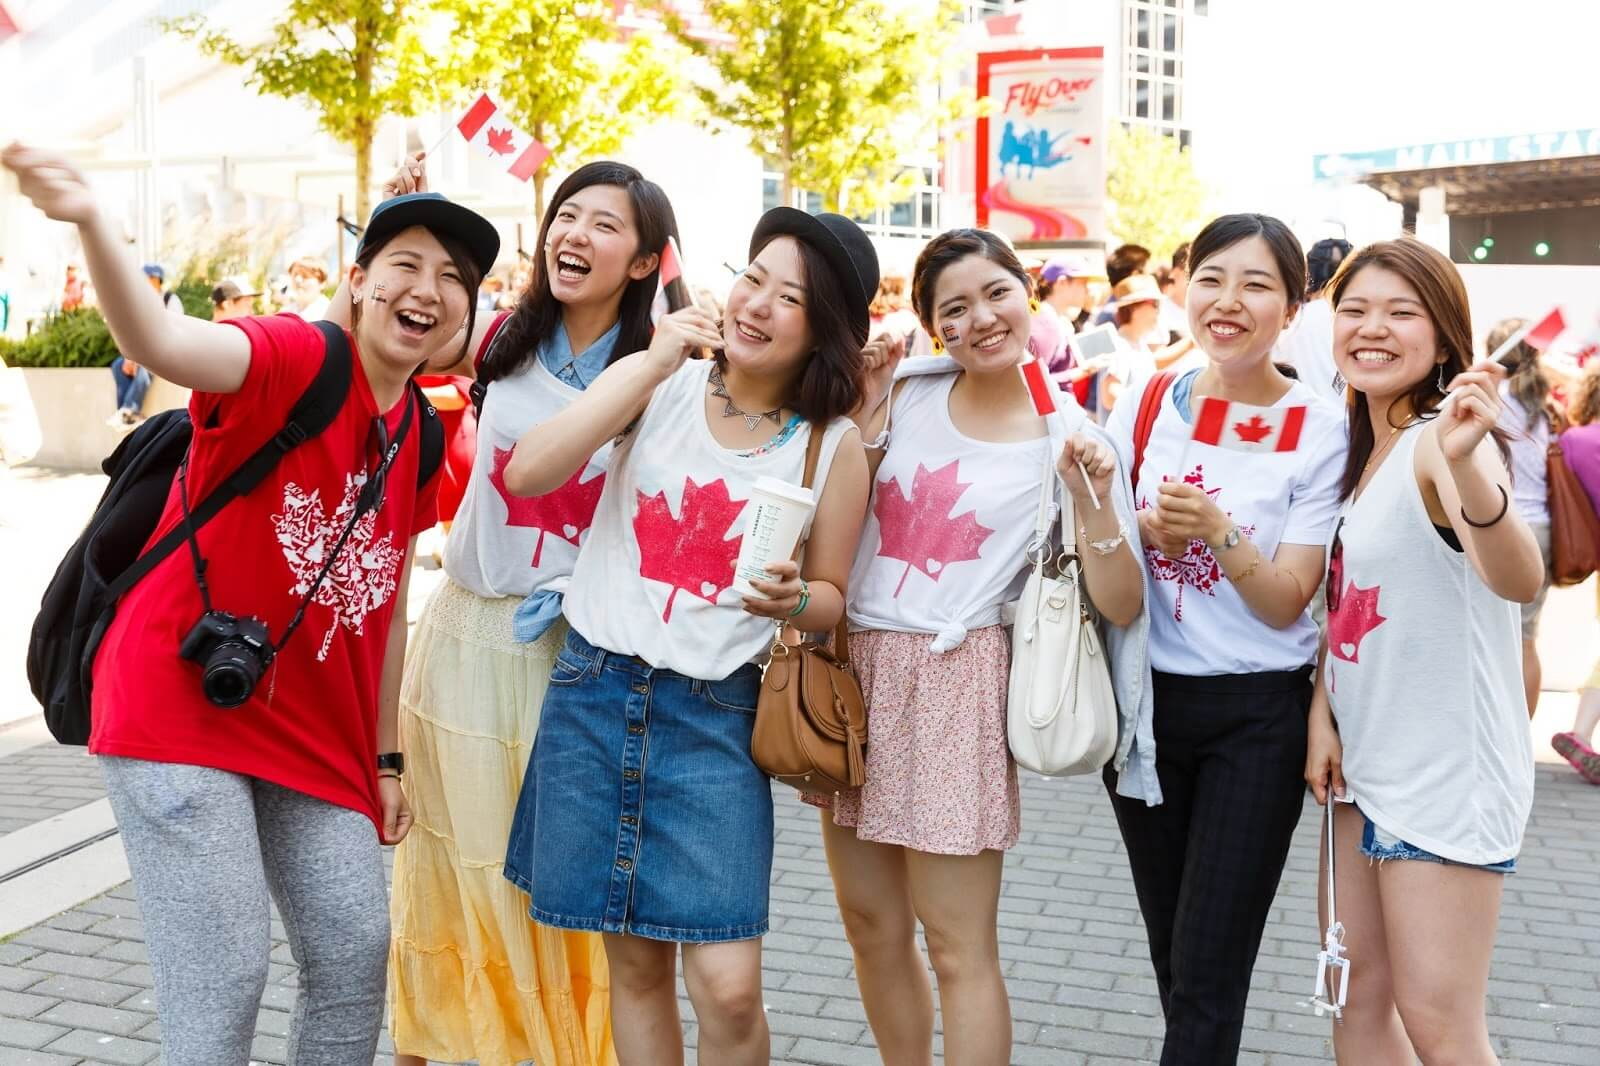 Global travelers want to meet travelers of their own nationalities on holiday